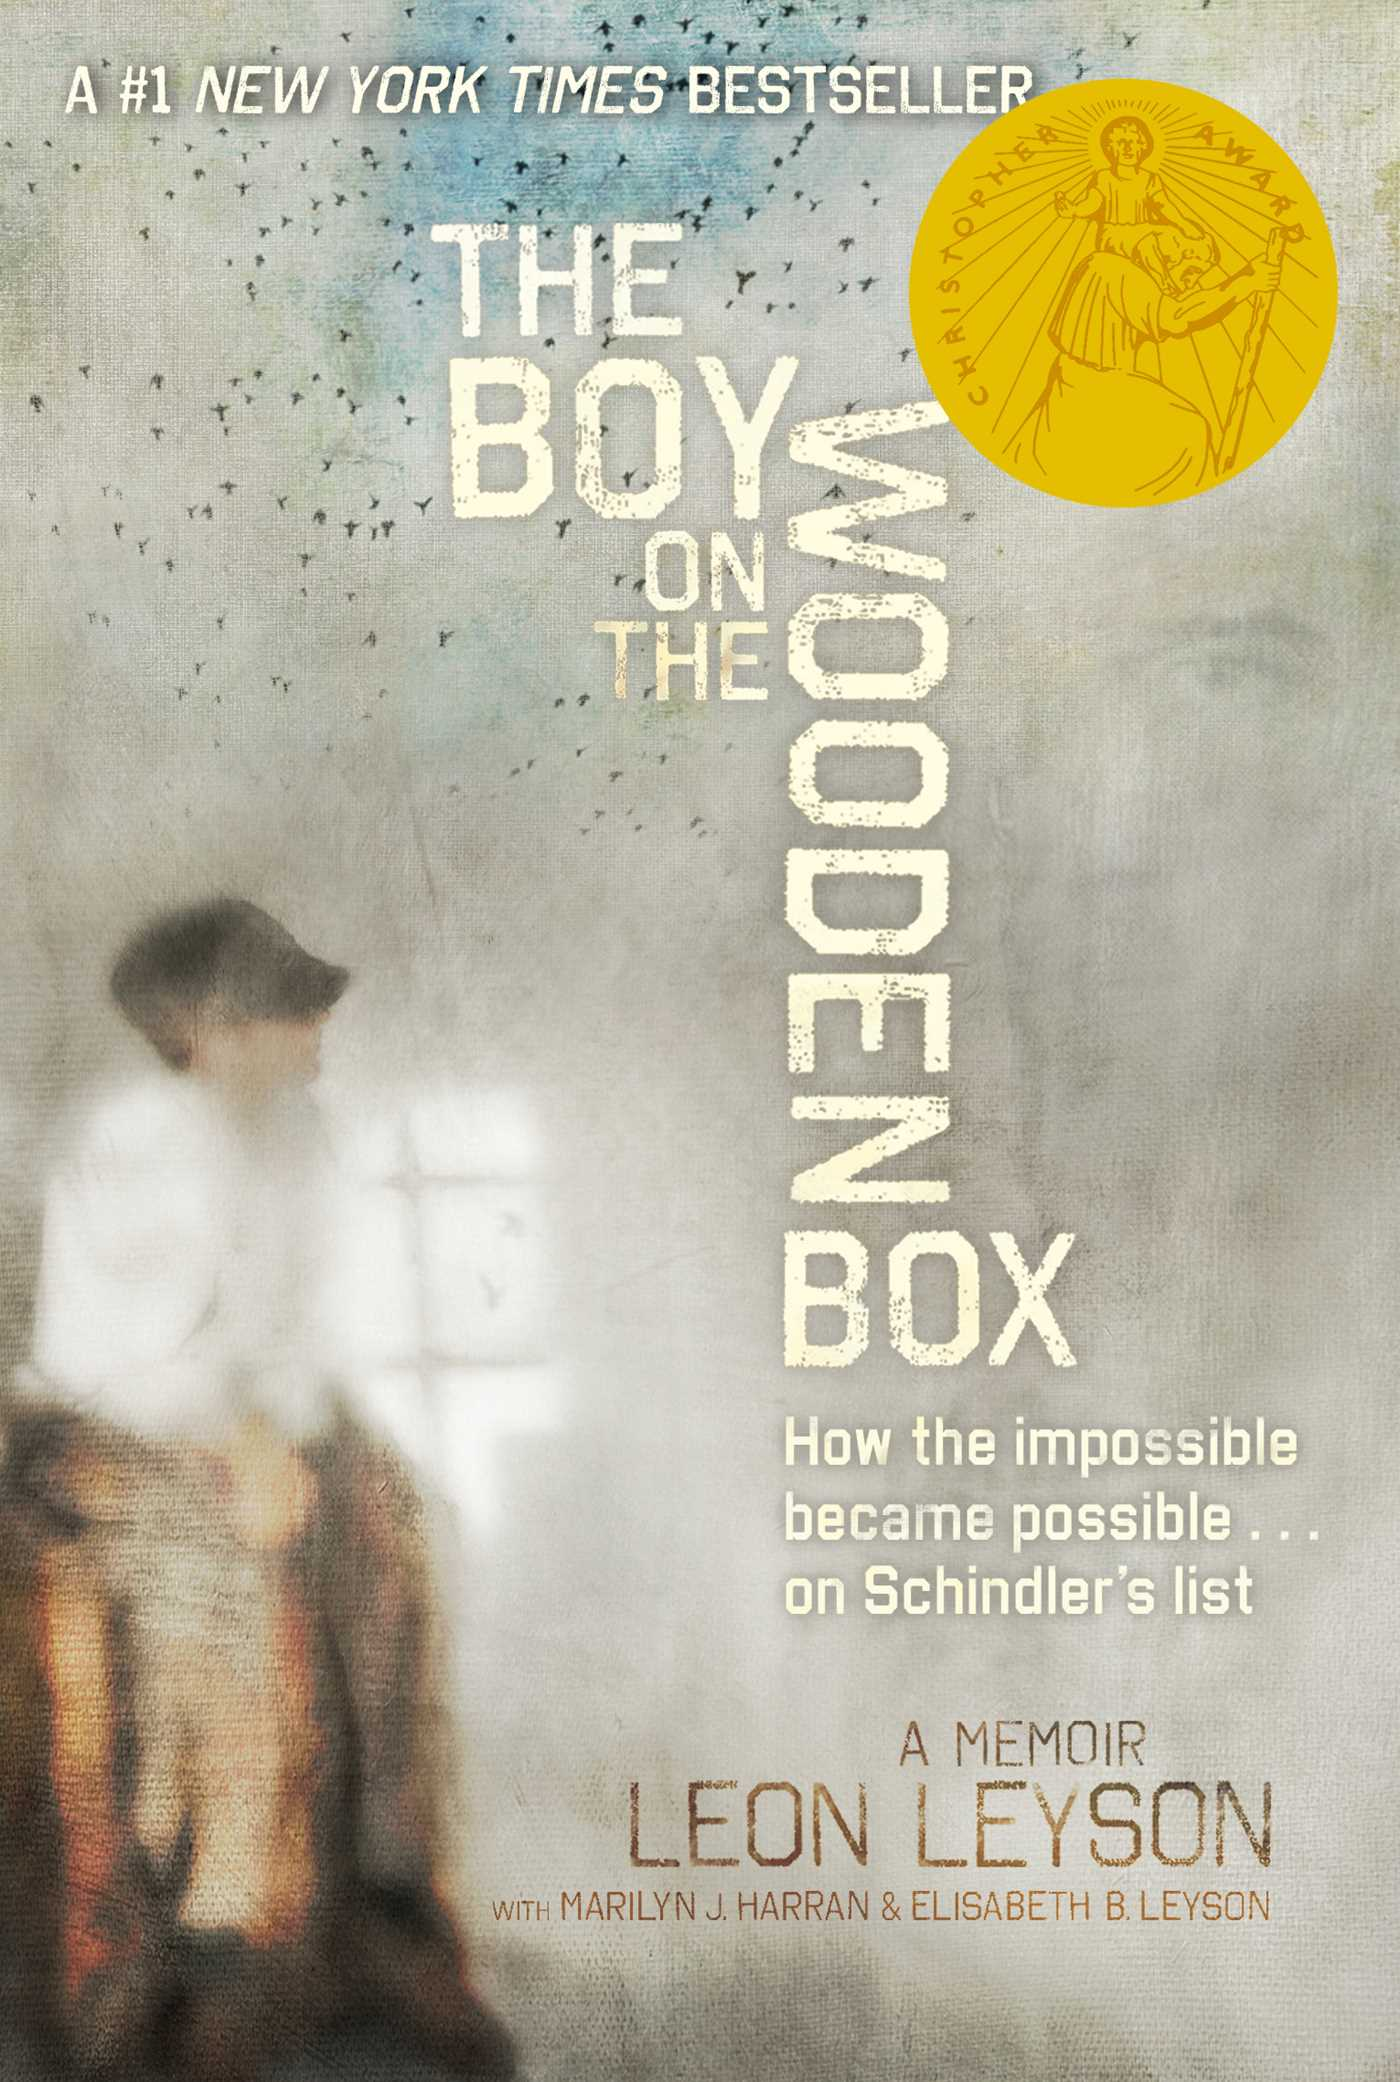 the boy on the wooden box book by leon leyson marilyn j harran the boy on the wooden box book by leon leyson marilyn j harran elisabeth b leyson official publisher page simon schuster